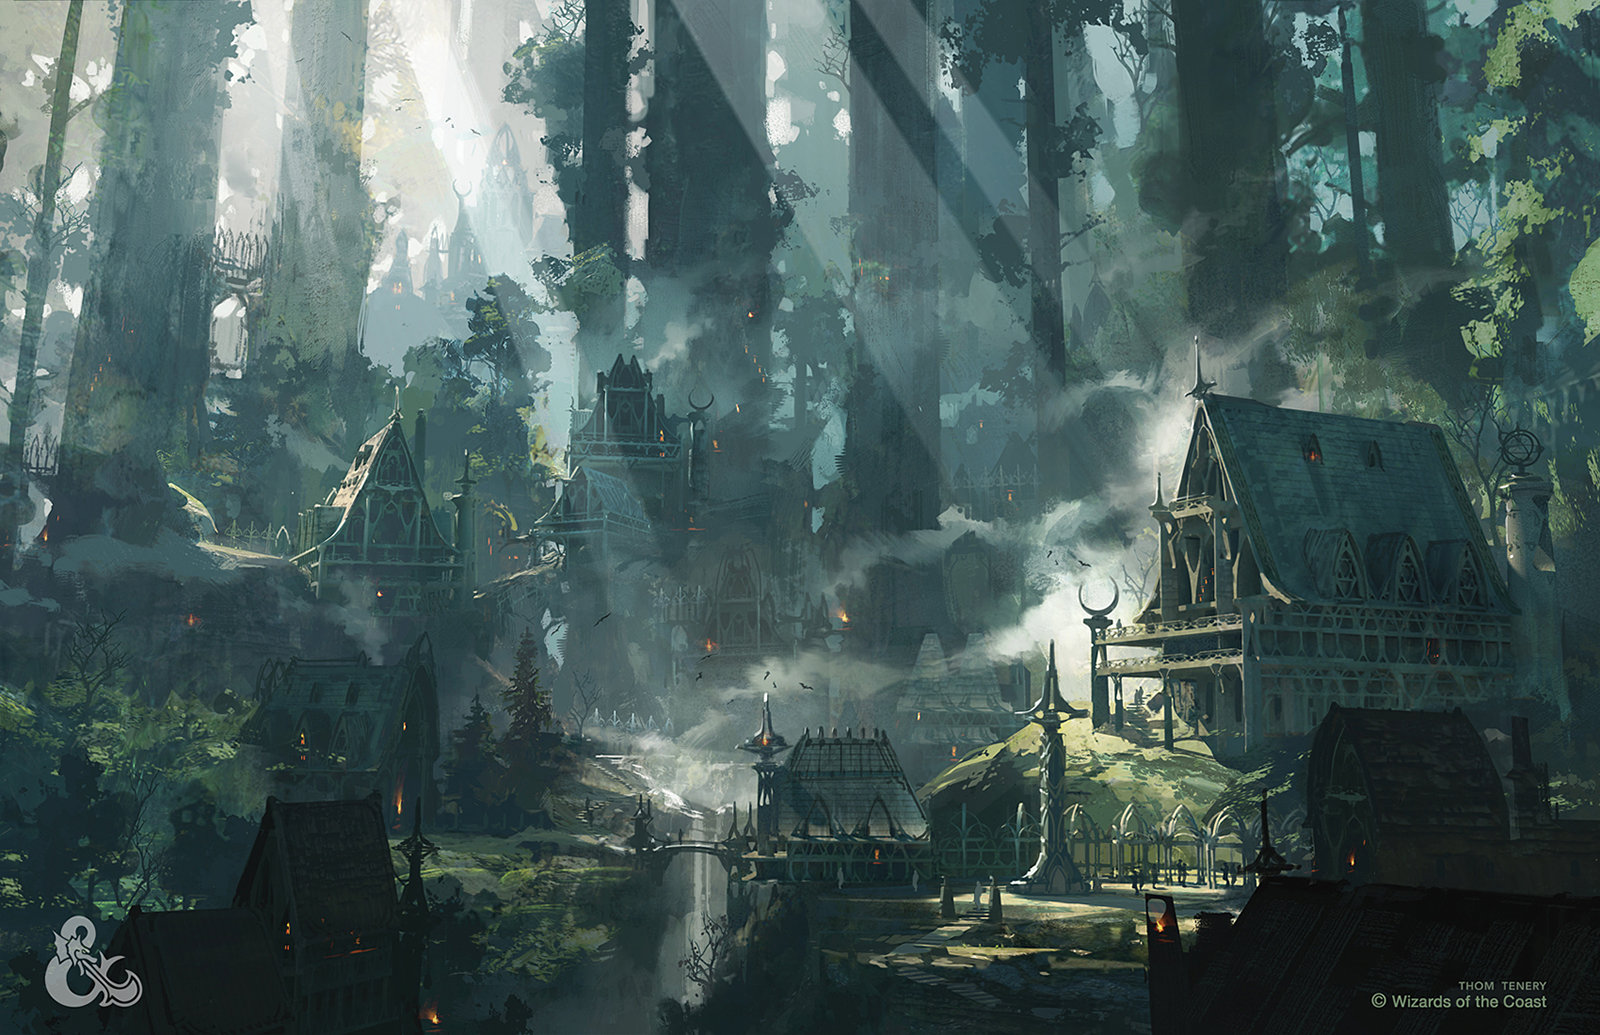 ArtStation  Elven City Thom Tenery